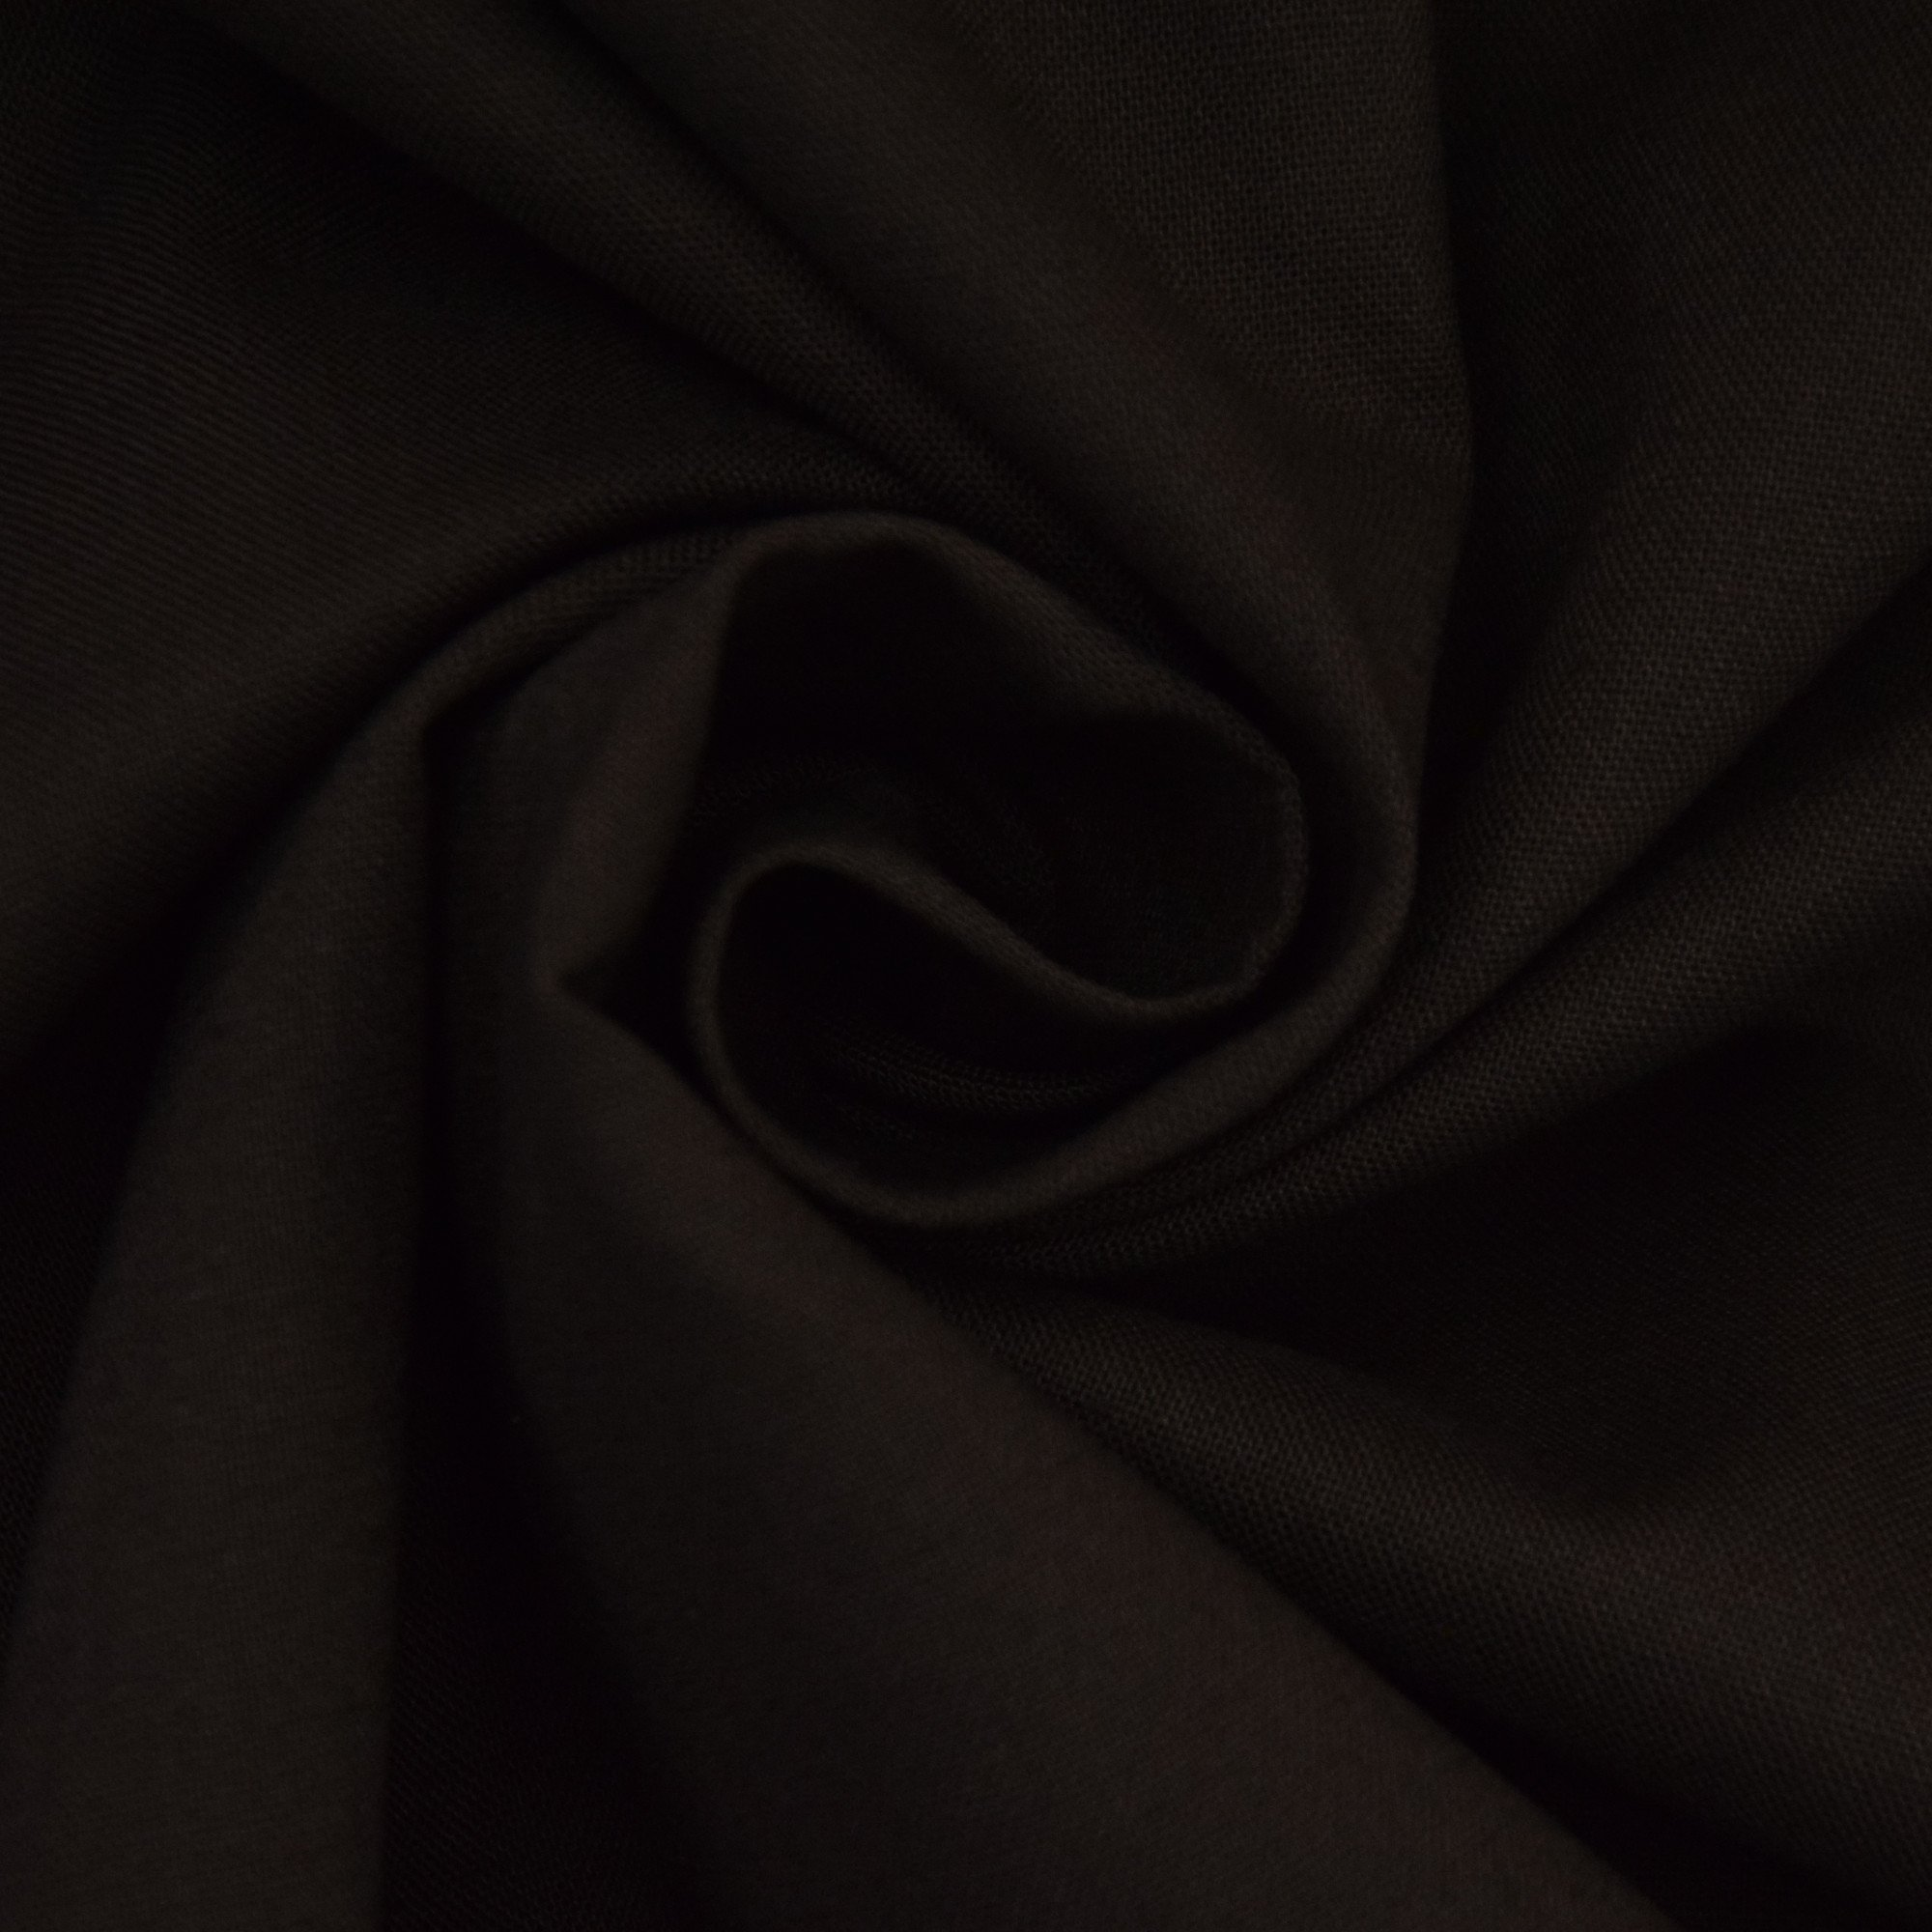 Cotton Cretonne dark brown